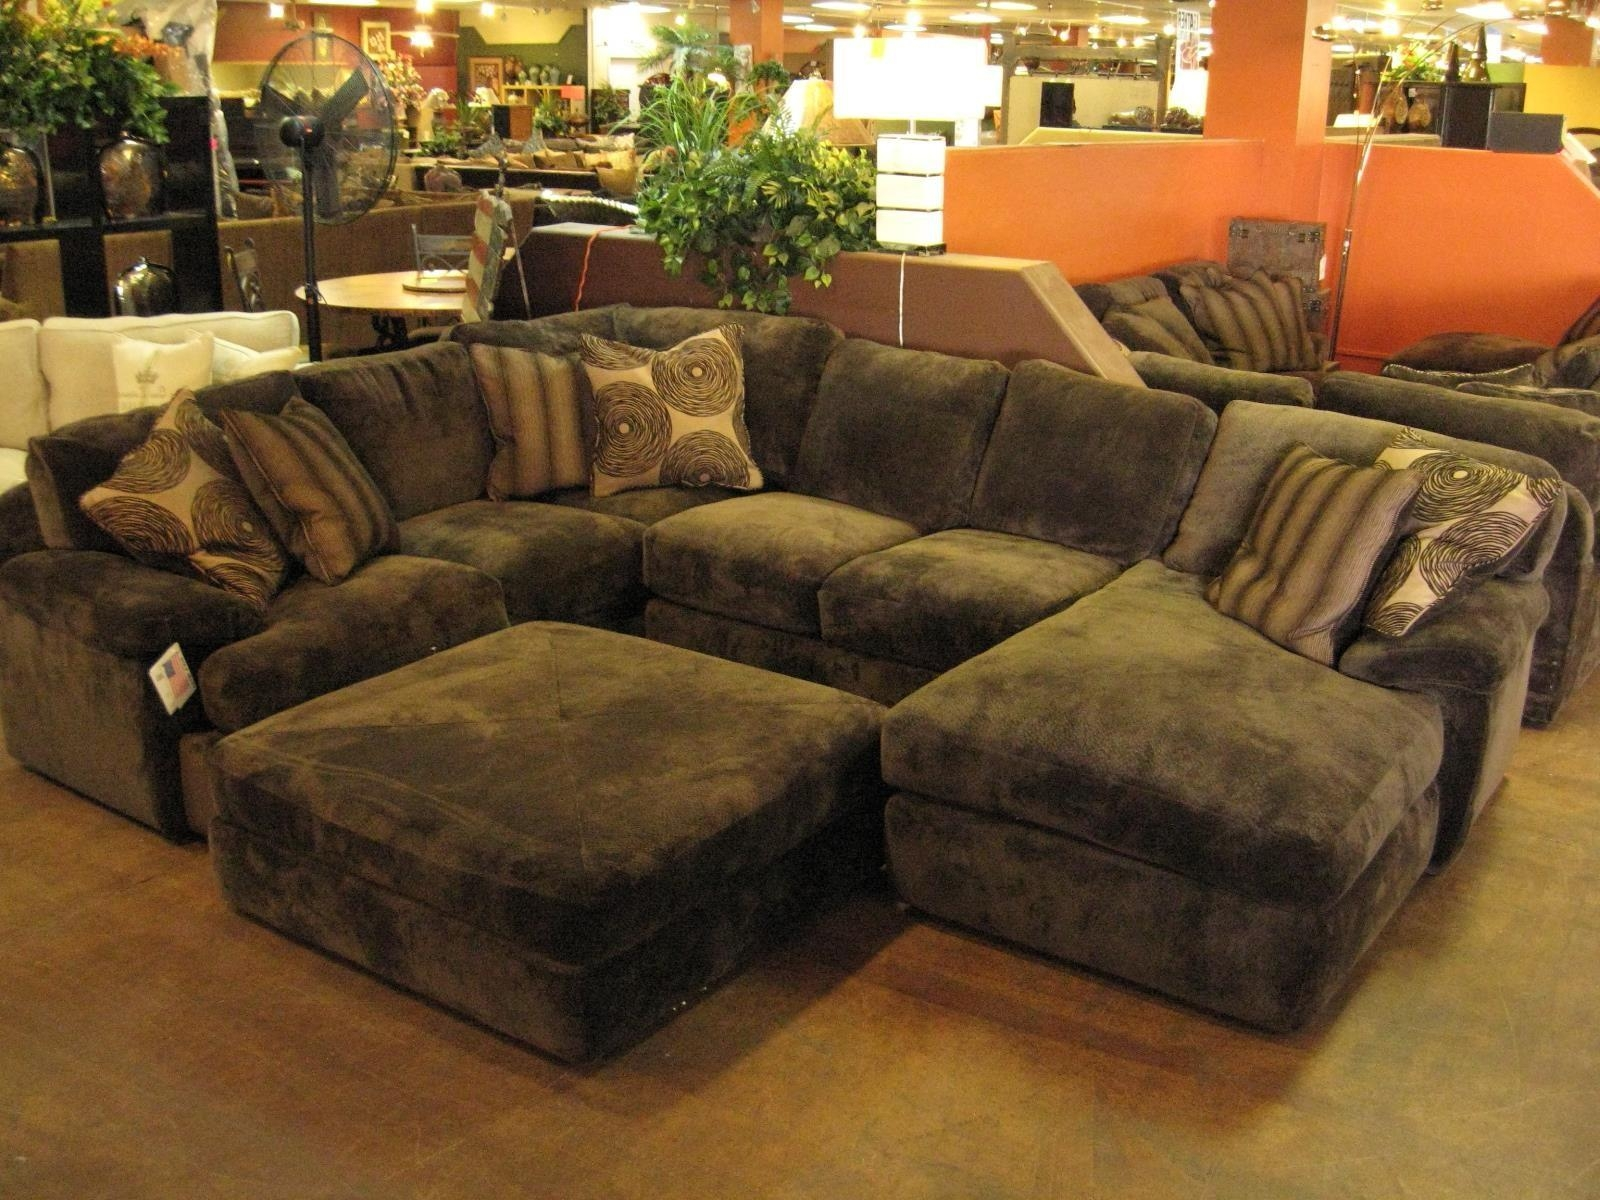 Sofas Center : Sectional Sofa With Oversized Ottoman Home Design In Sectional With Large Ottoman (View 9 of 20)